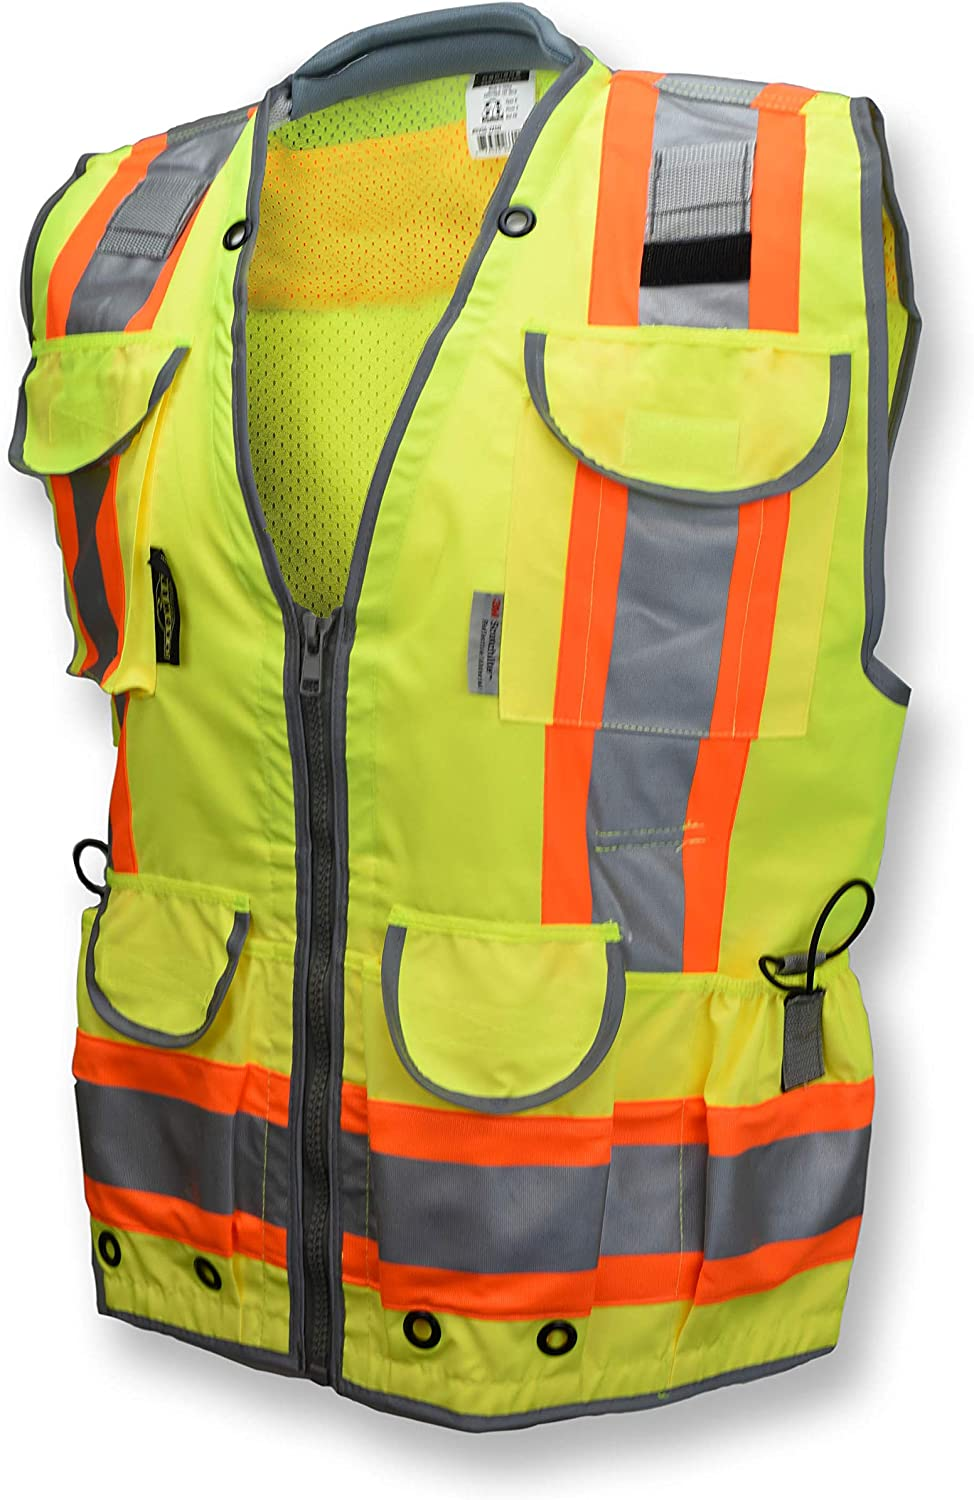 Radians SV55 Class 2 Heavy Woven Two Tone Engineer Vest with Padded Neck to Support Extra Weight in Cargo Pockets, Hi Viz Green or Hi Viz Orange